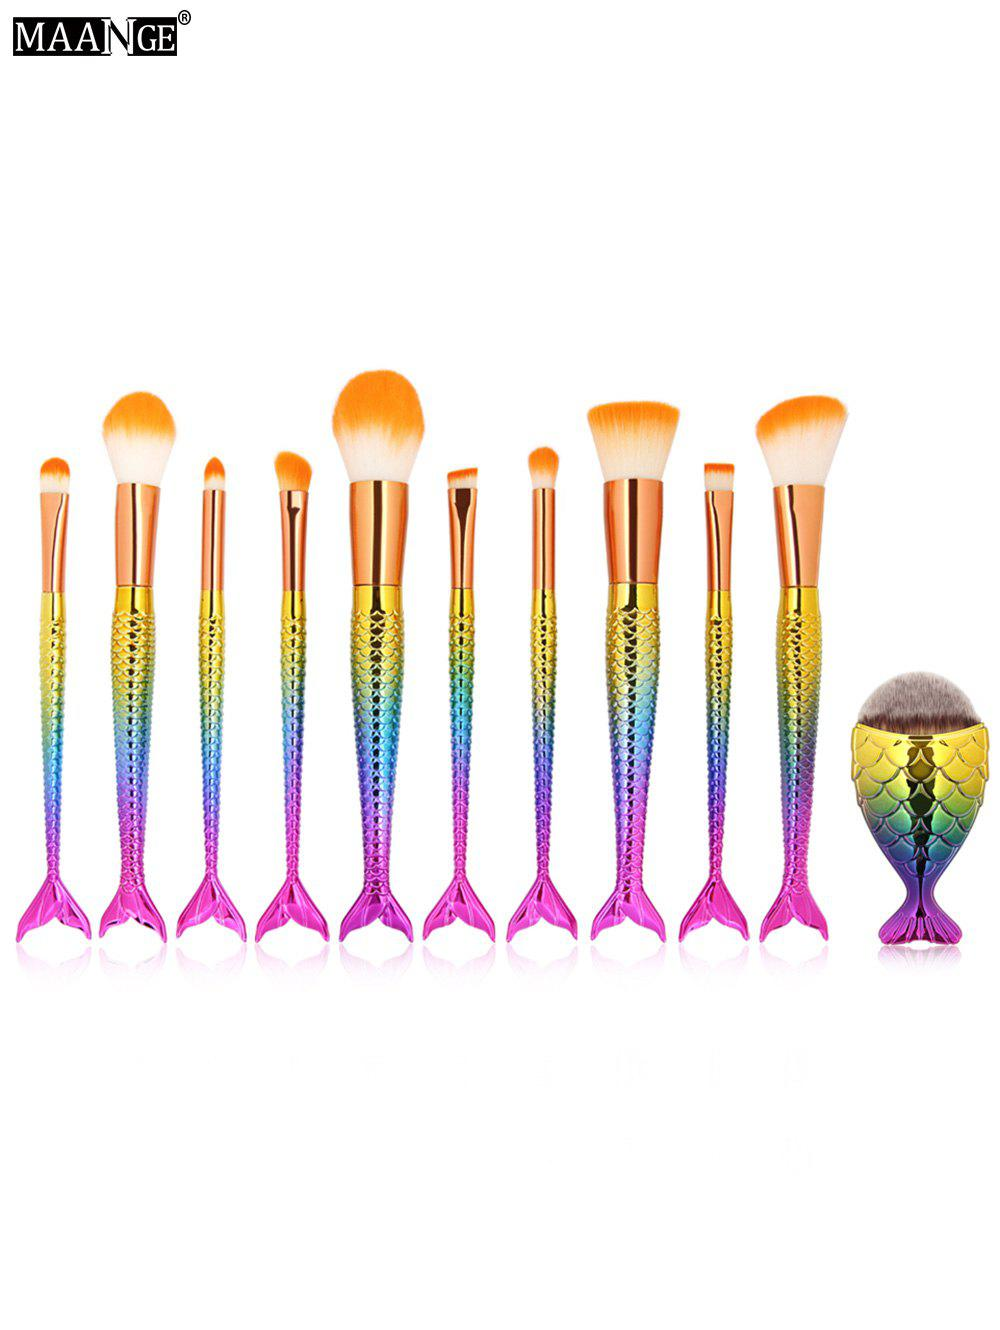 MAANGE 11Pcs Mermaid Makeup Brushes and Foundation Brush gujhui 15pcs wooden foundation makeup brushes sets